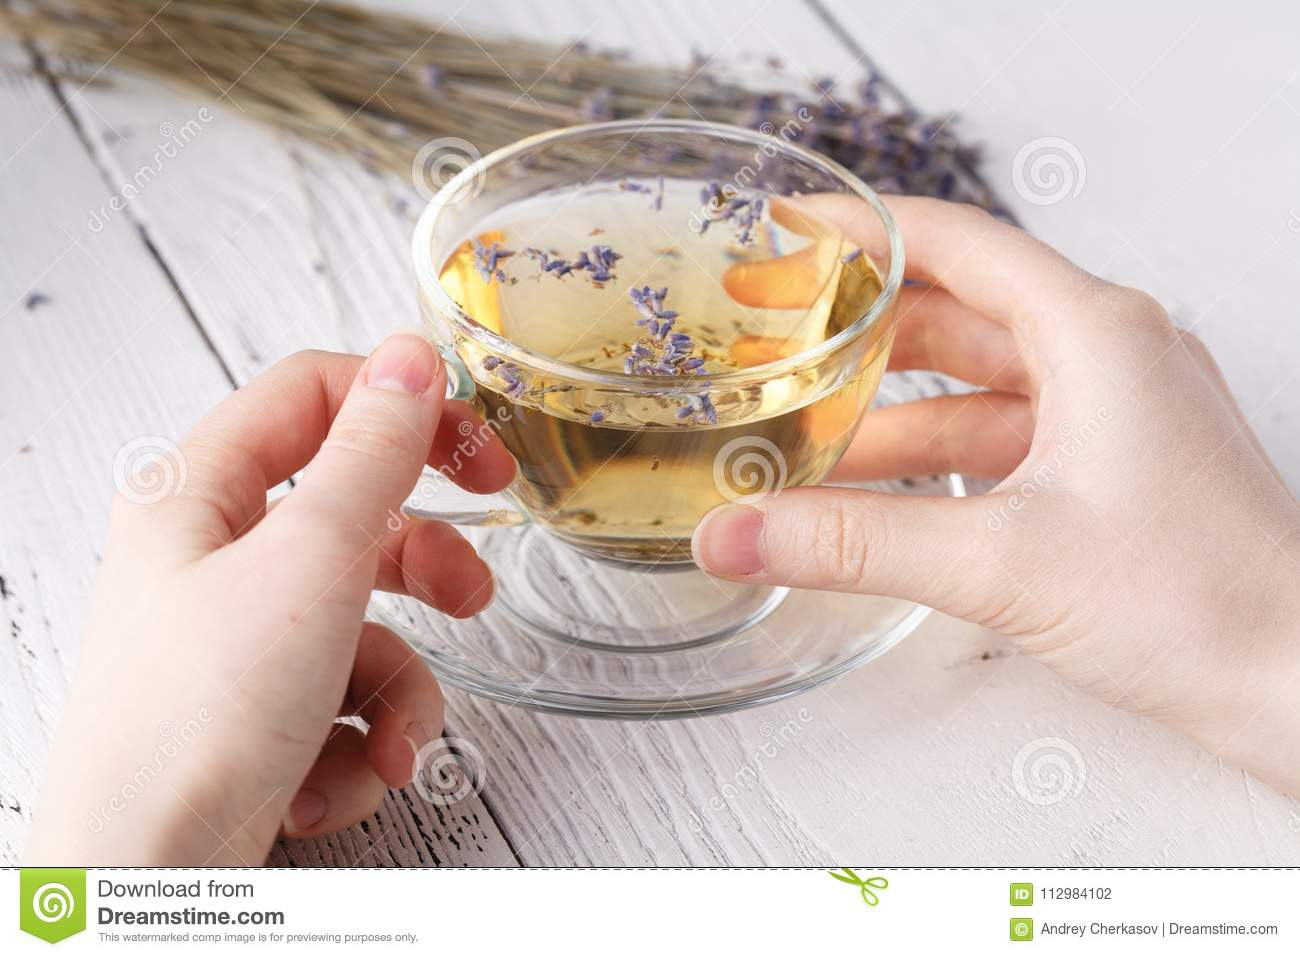 Refreshment and relax with herbal tea